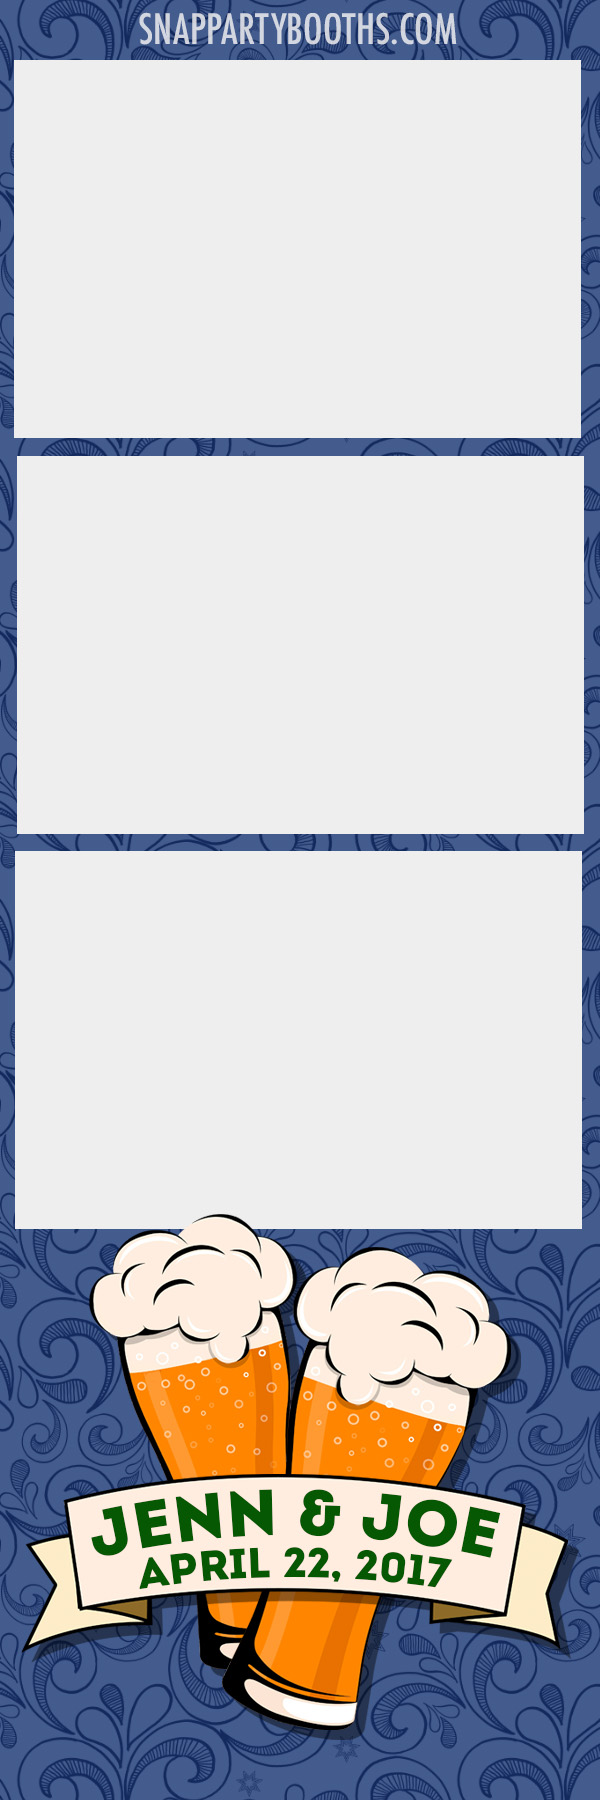 Photo Templates Snap Party Booths